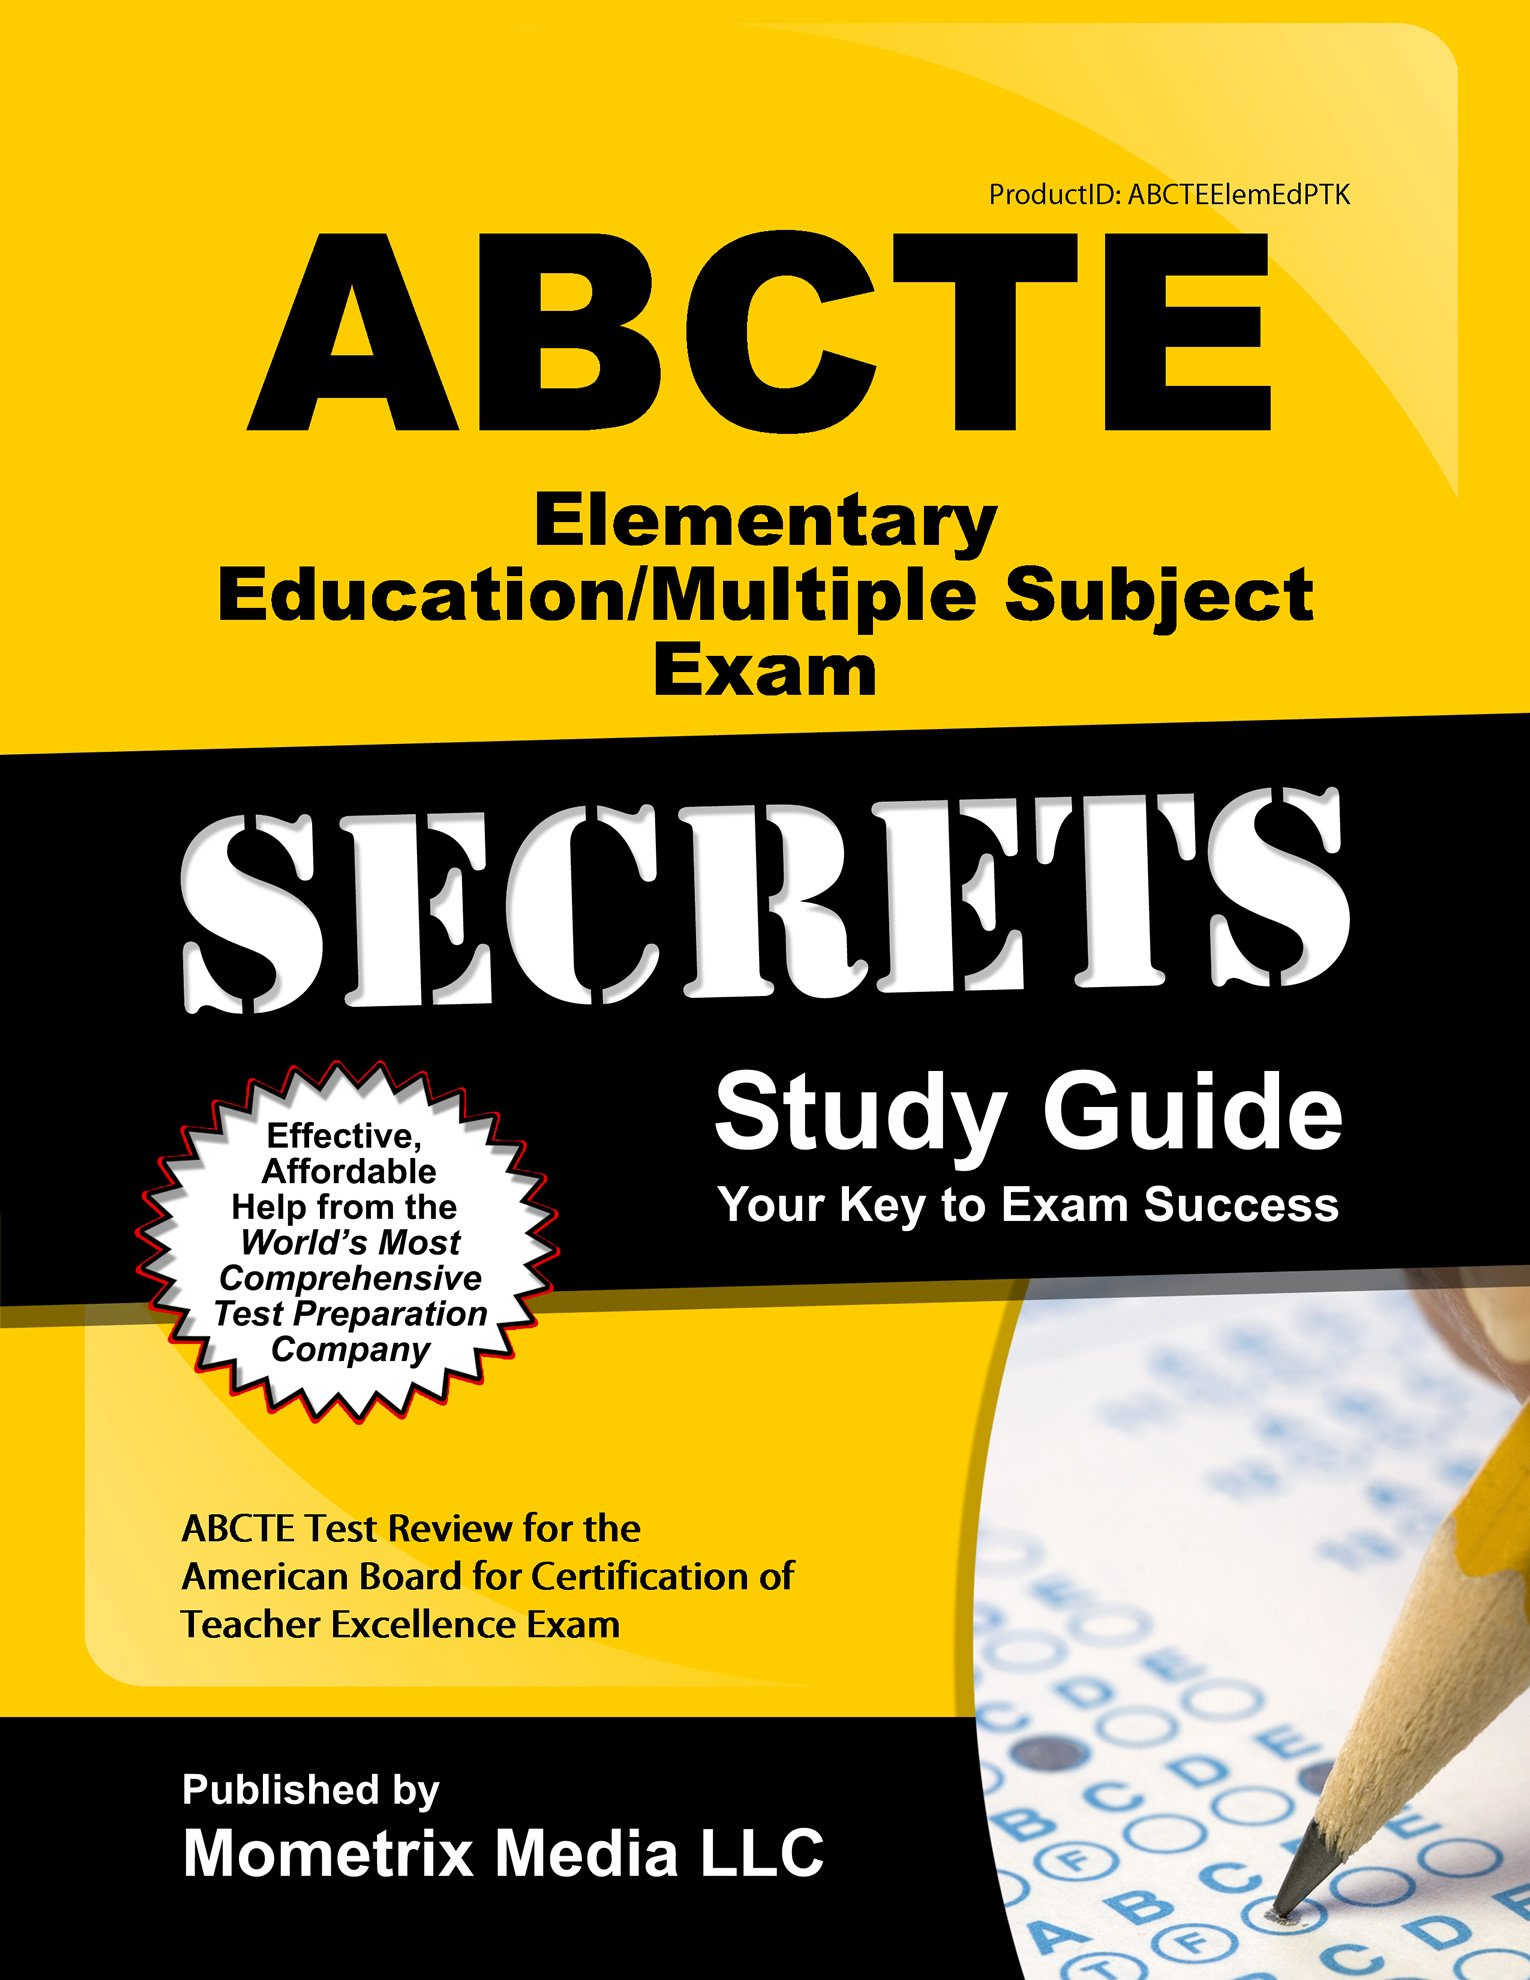 Abcte elementary educationmultiple subject ptk exam secrets abcte elementary educationmultiple subject ptk exam secrets study guide abcte test review for the american board for certification of teacher excellence 1betcityfo Images